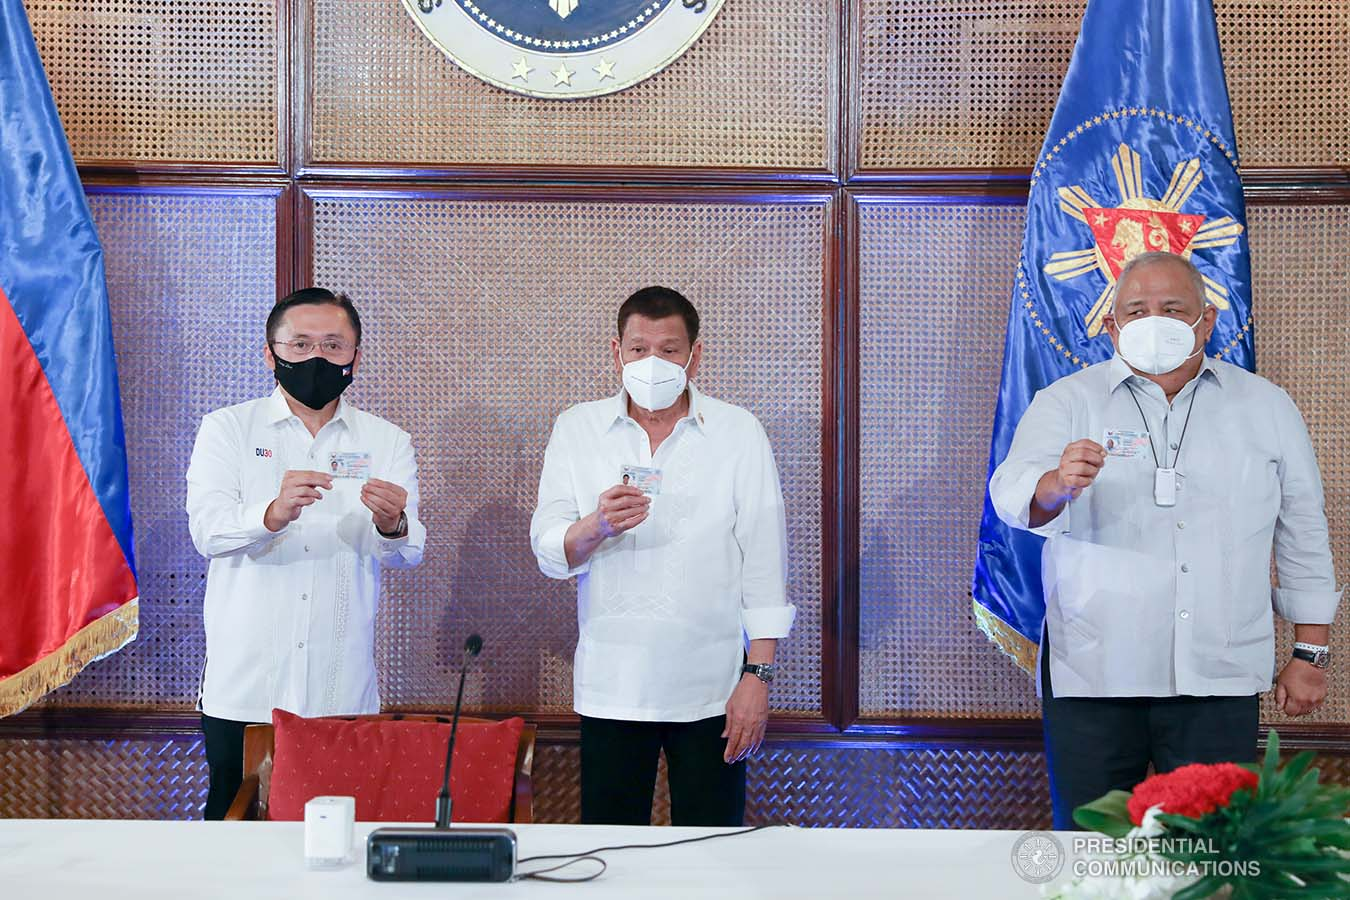 President Rodrigo Roa Duterte together with Senator Christopher Lawrence Go and Executive Salvador Medialdea show their government-issued identification cards at the Malacañan Palace on March 3, 2021. KARL NORMAN ALONZO/ PRESIDENTIAL PHOTO